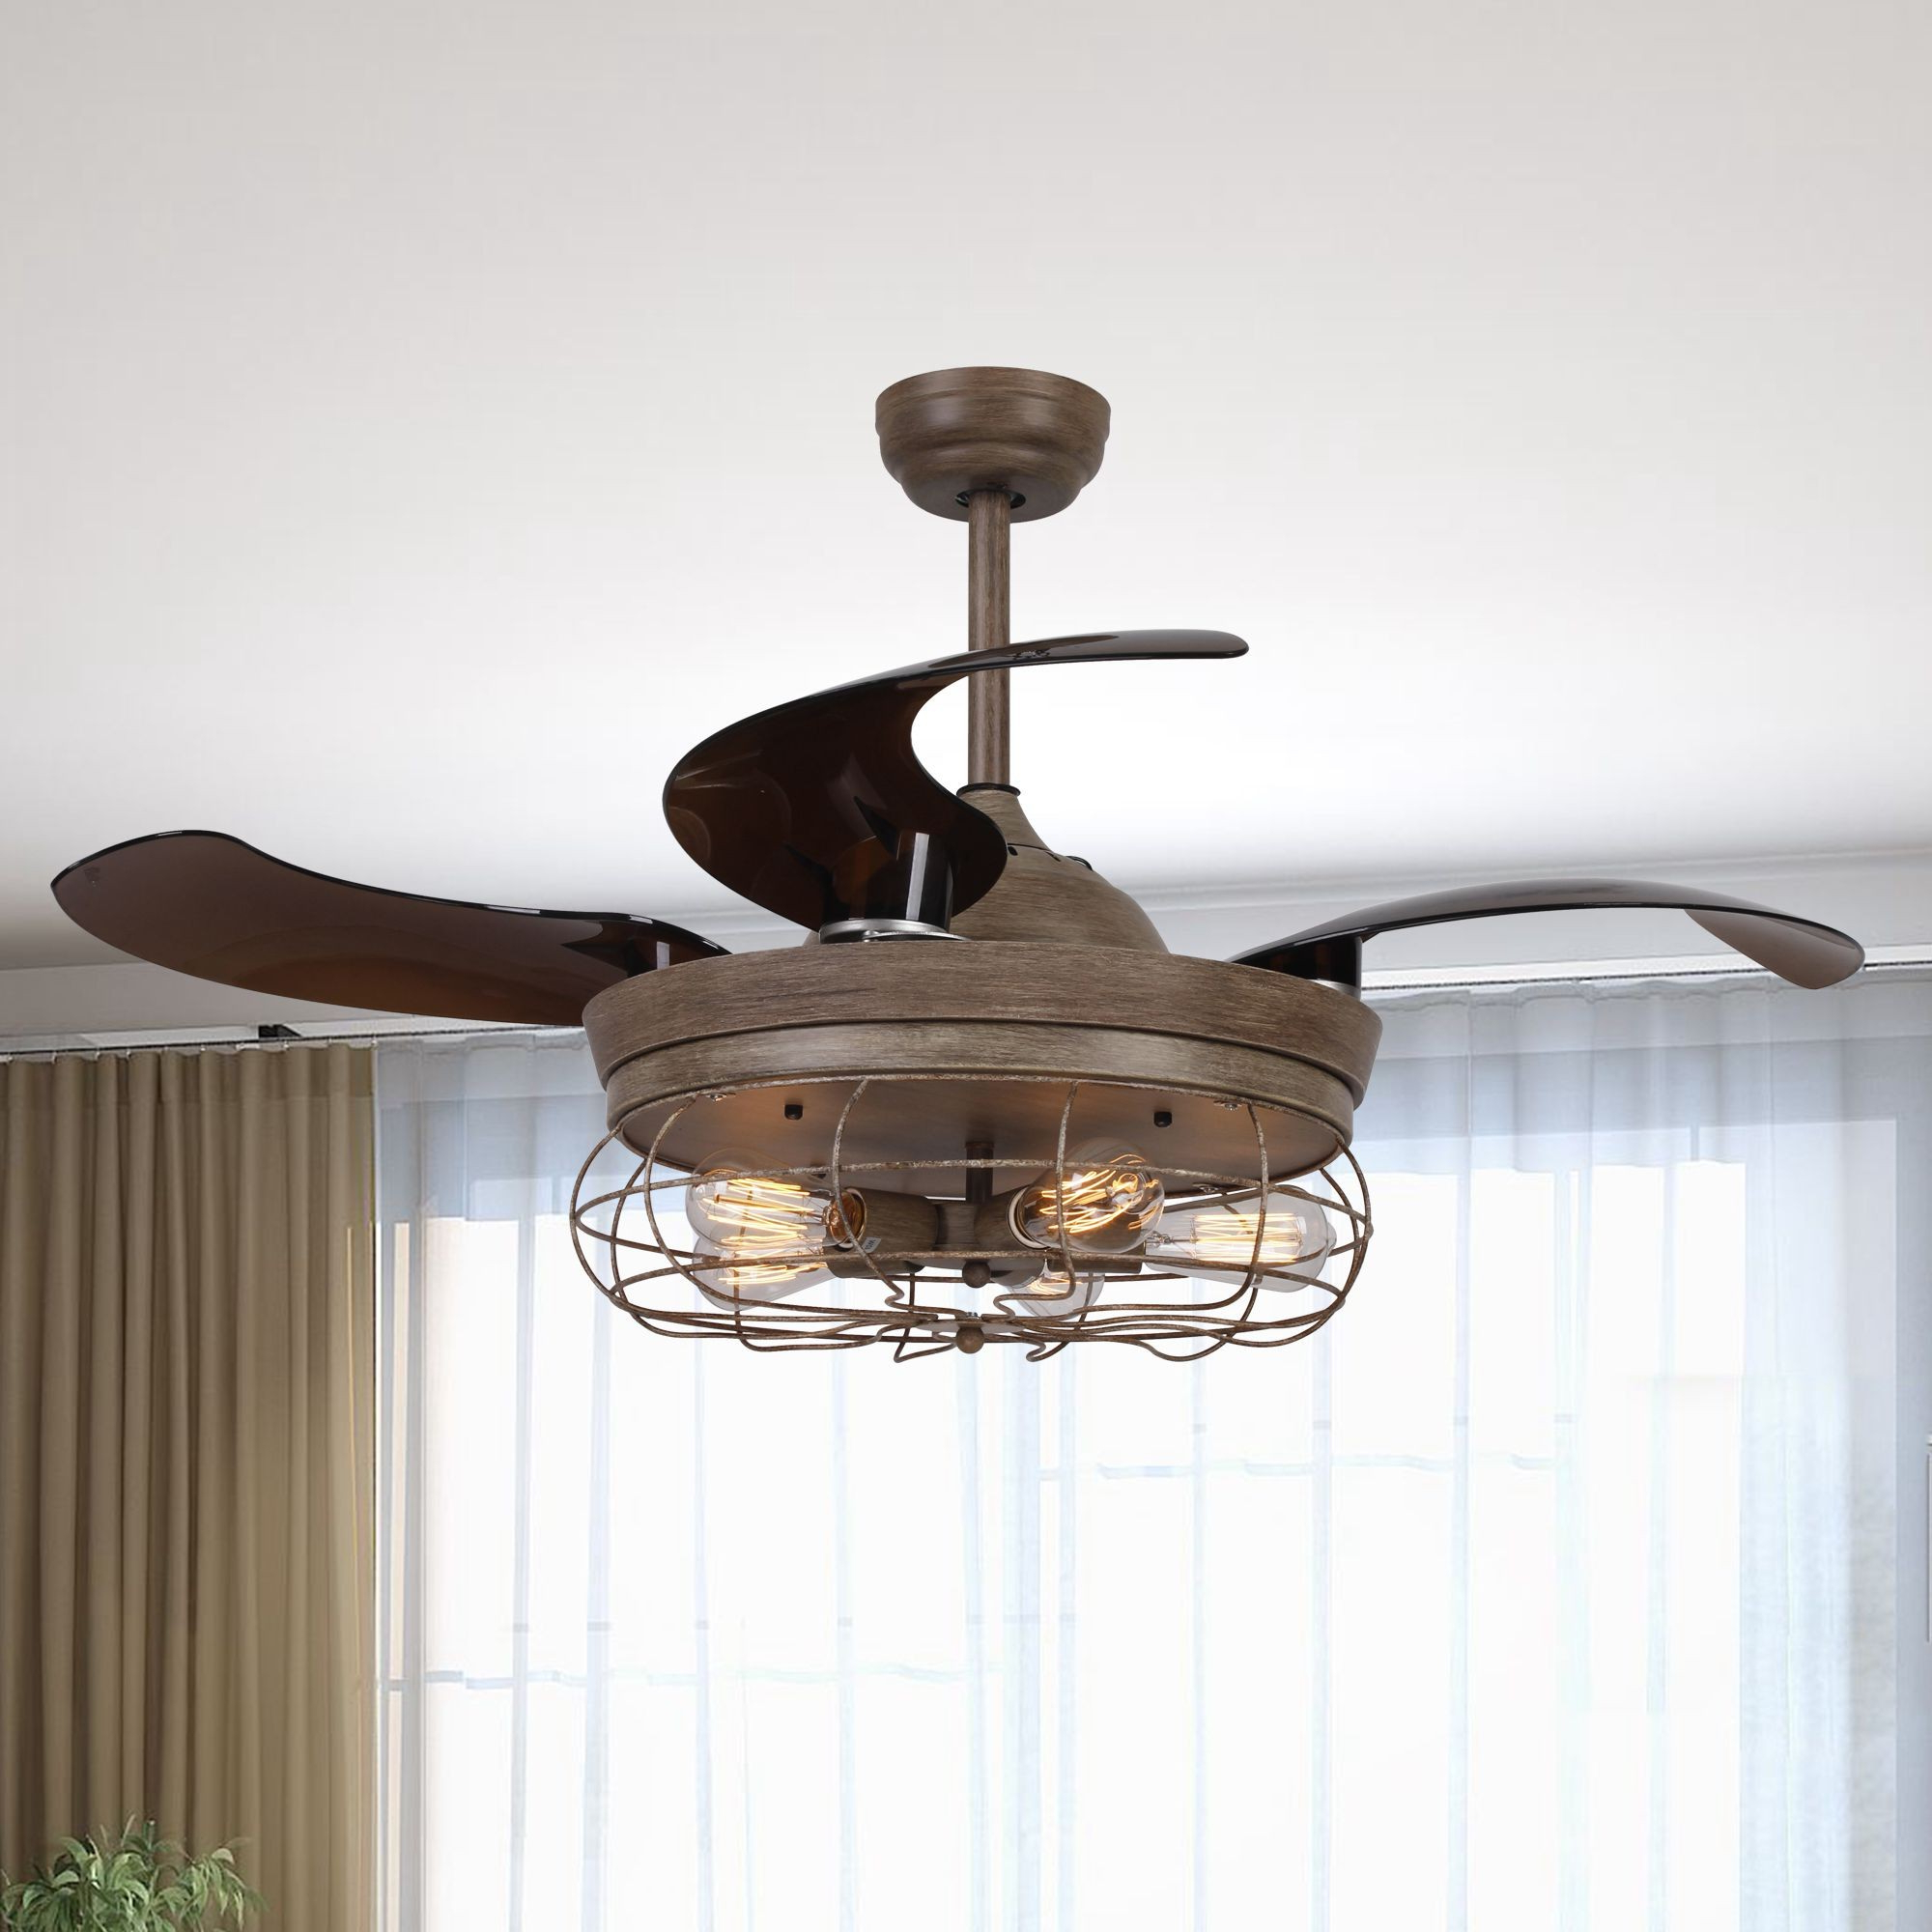 "46"" Benally Industrial Cage Retractable Ceiling Fan With Lights And Remote Control, Weathered Oak Wood Throughout Widely Used Caged Crystal 5 Blade Ceiling Fans (View 14 of 20)"